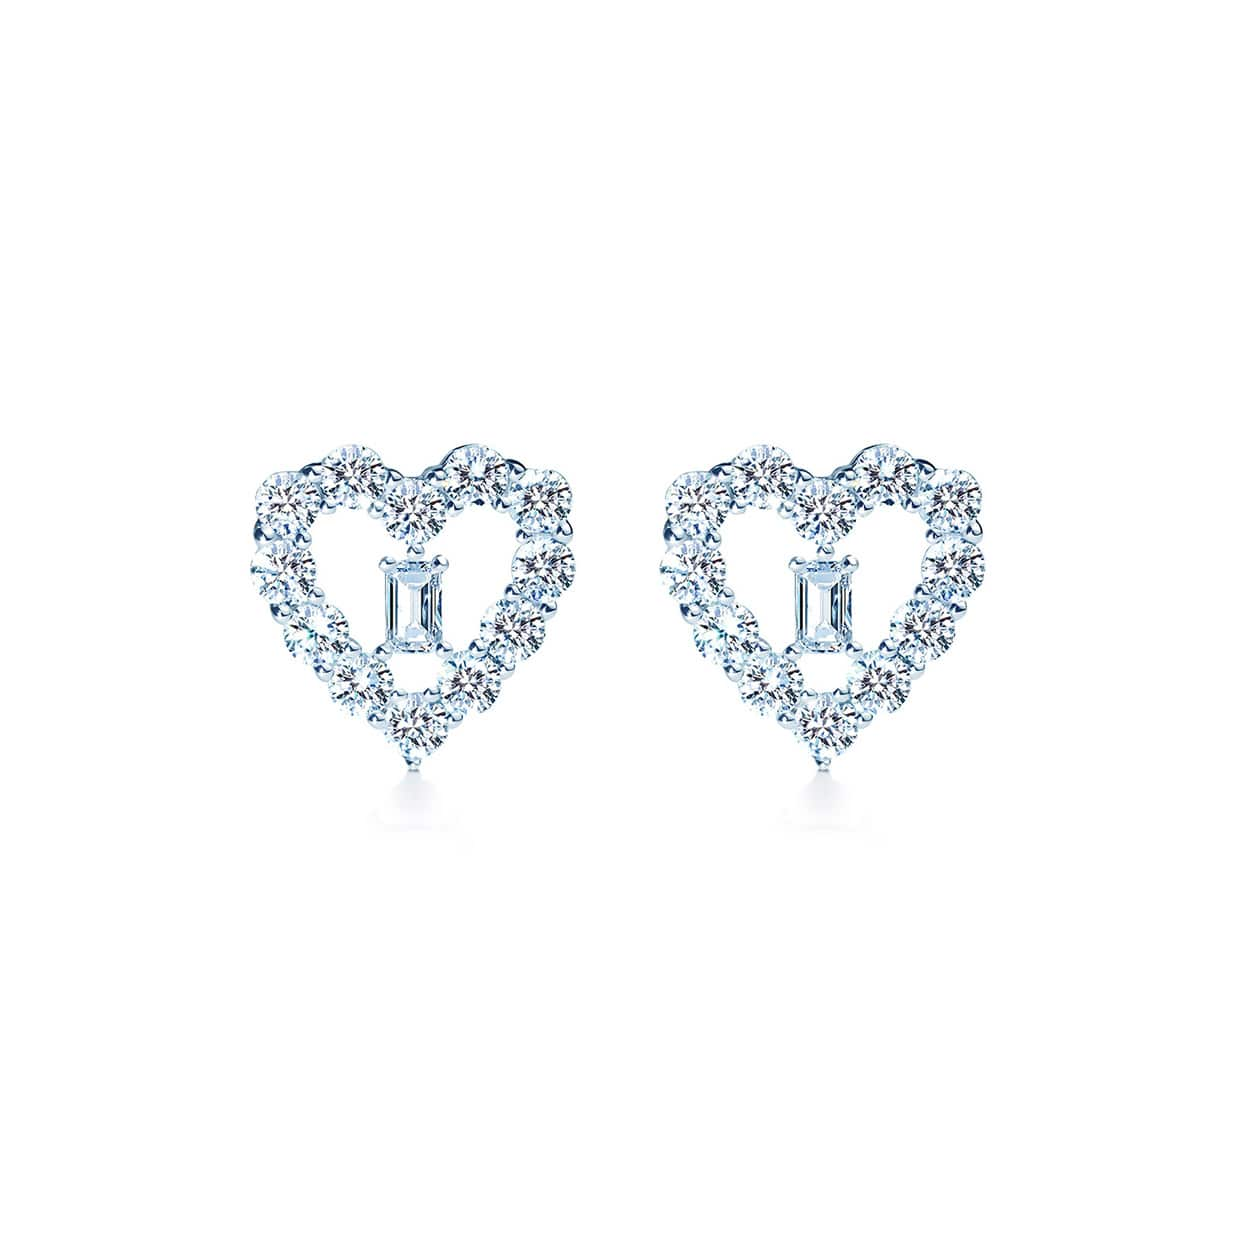 Oxford Heart Earrings - Abelstedt